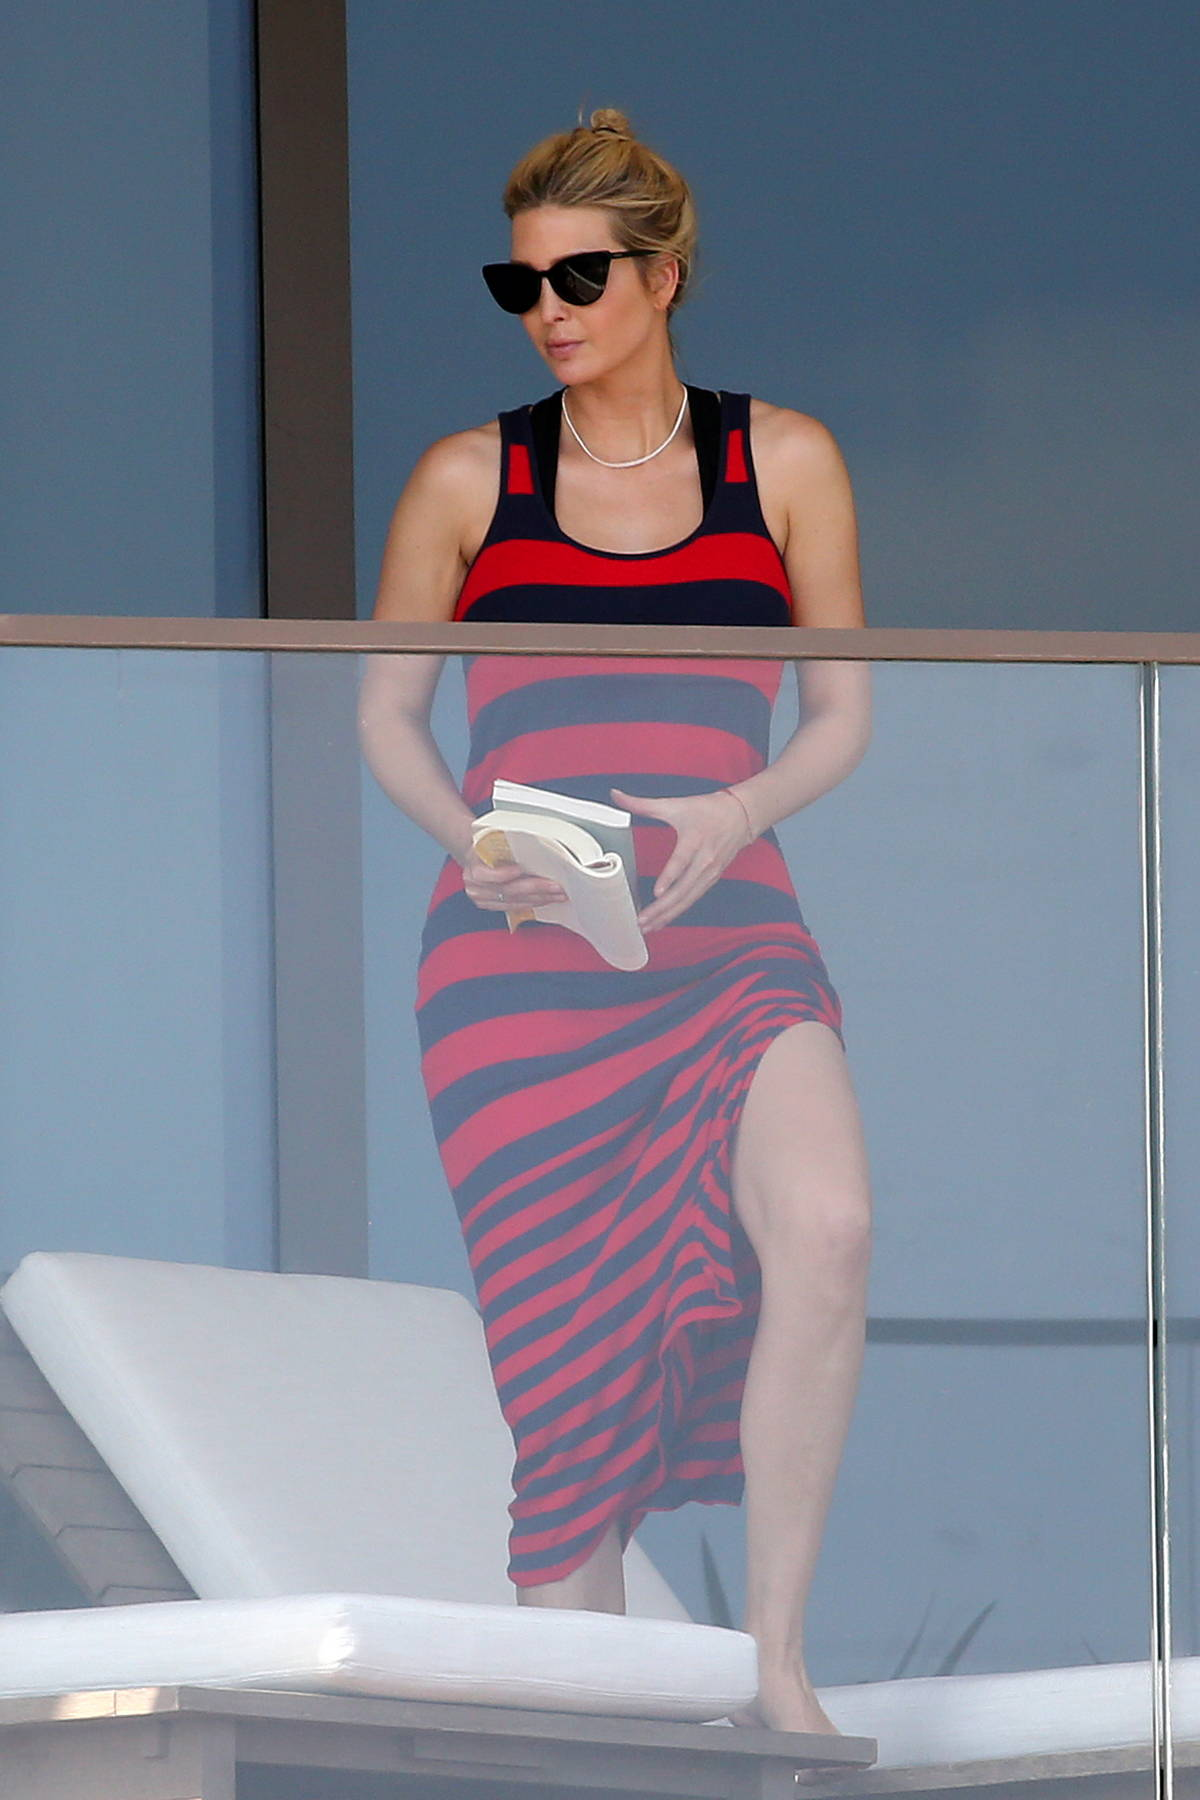 Ivanka Trump seen wearing a red and black striped dress while lounging on her balcony in Miami, Florida